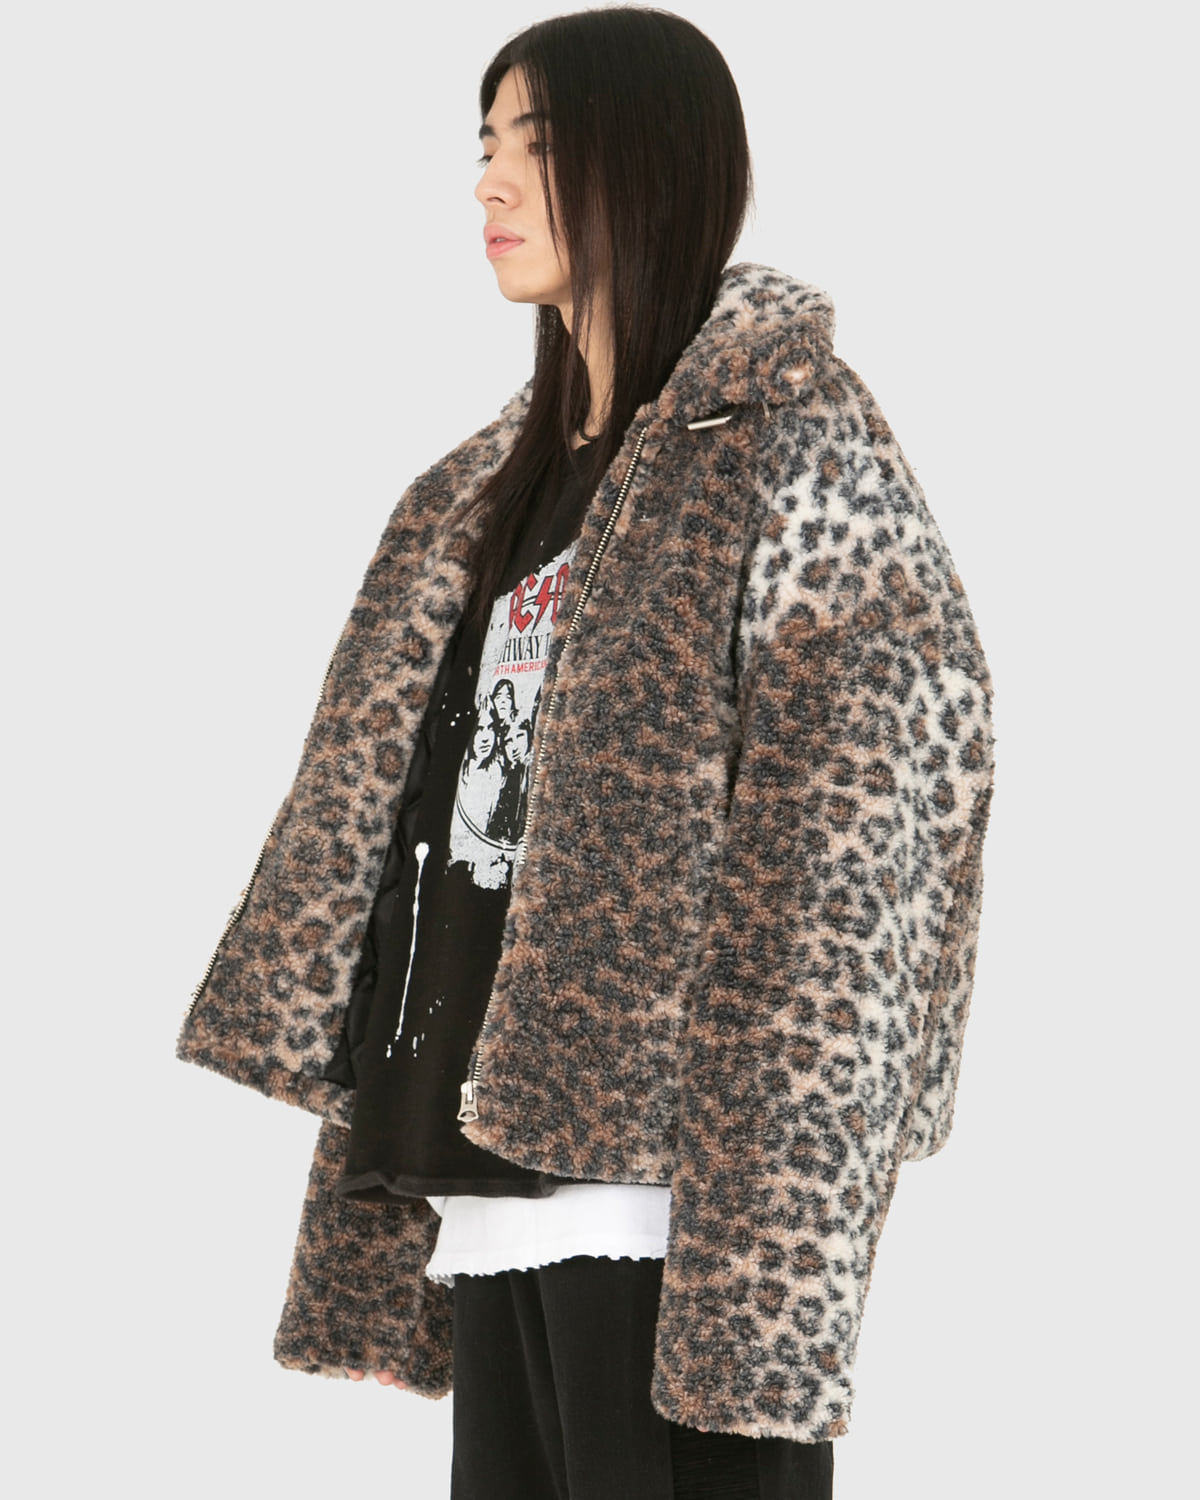 raucohouse-LEOPARD DUMBLE SHEARLING JACKET - RAUCO HOUSE♡韓國男裝外套